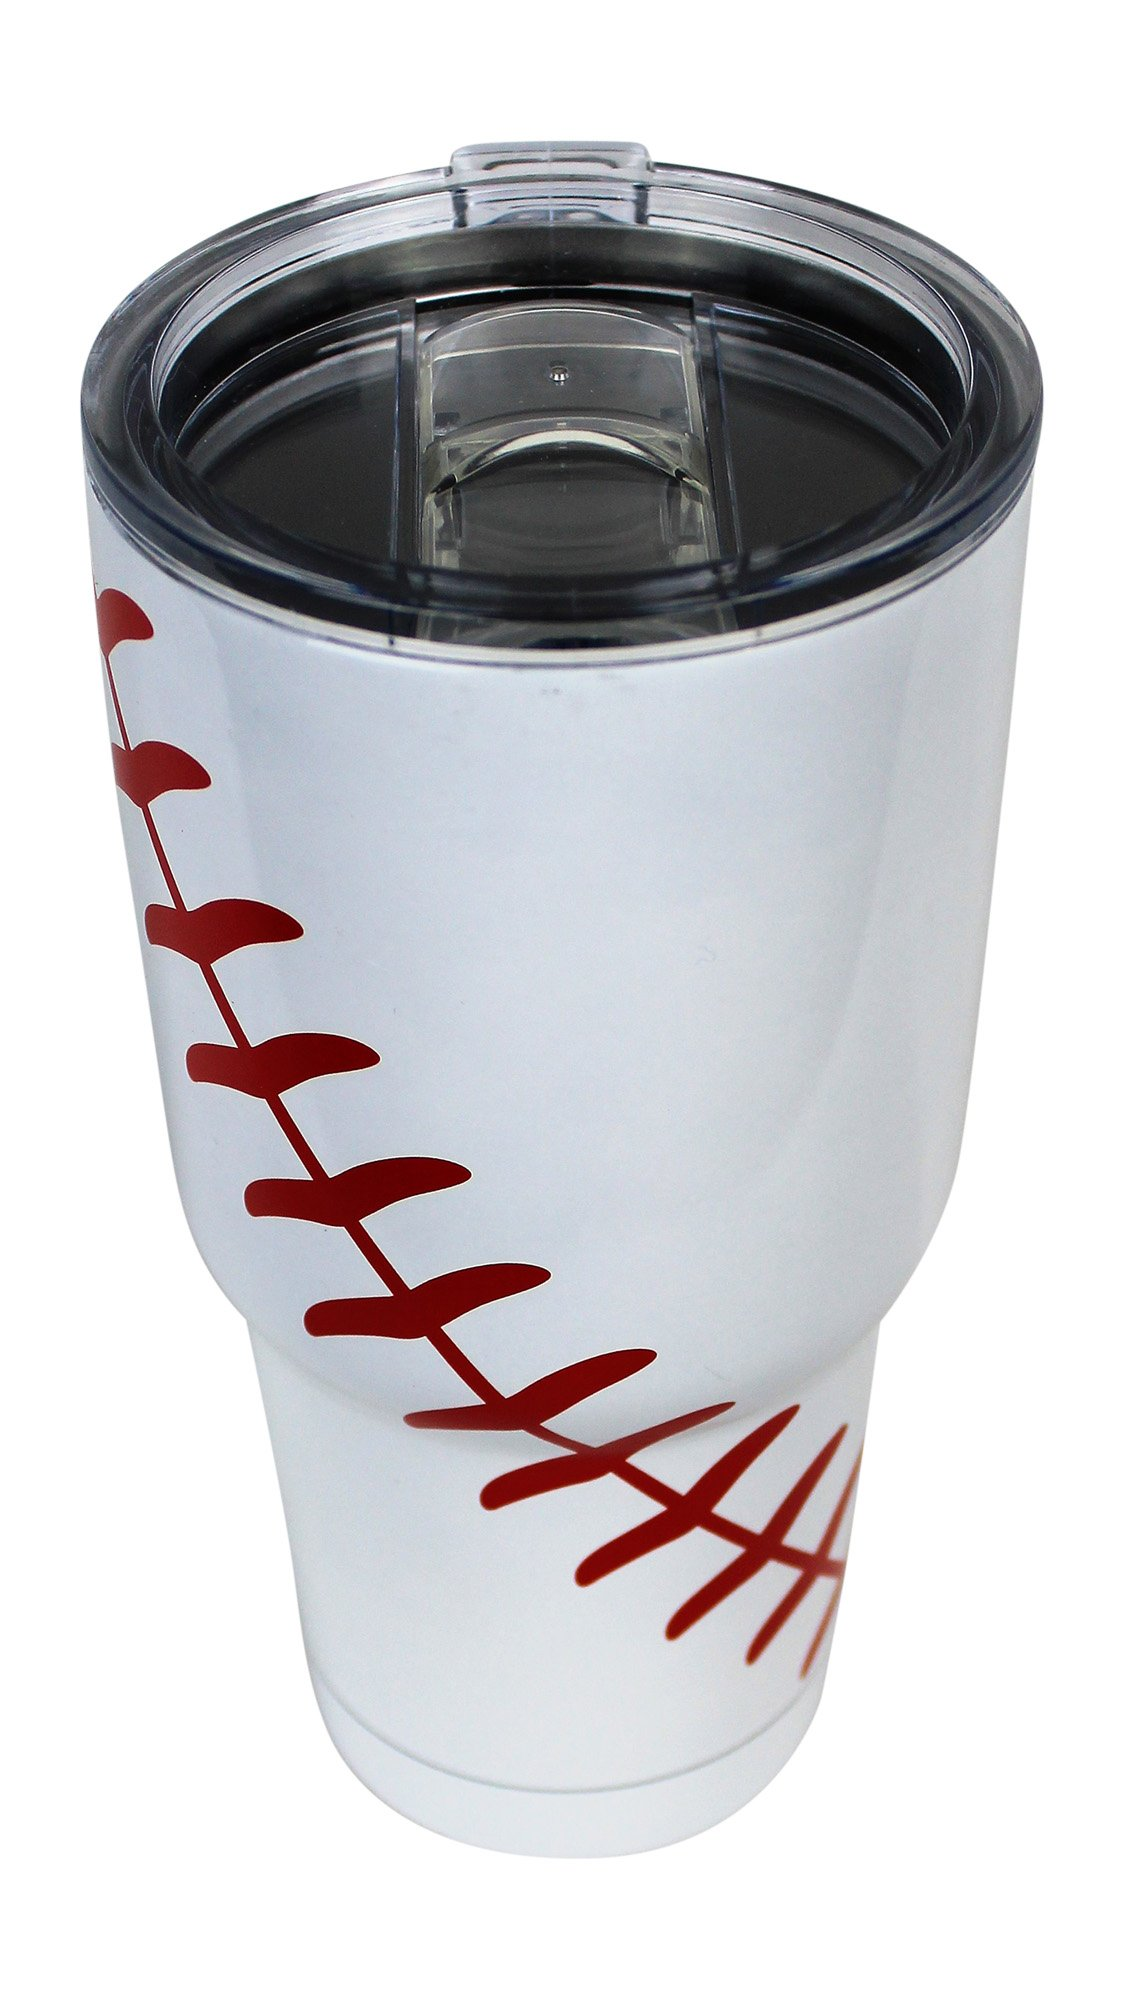 Baseball Tumbler Cup 30oz Gift for Mom Men Sports Travel Coffee Mug, Stainless Steel, Vacuum Insulated, Keeps Water Cold for 24, Hot for 12 hours (Baseball) by KnitPopShop (Image #2)